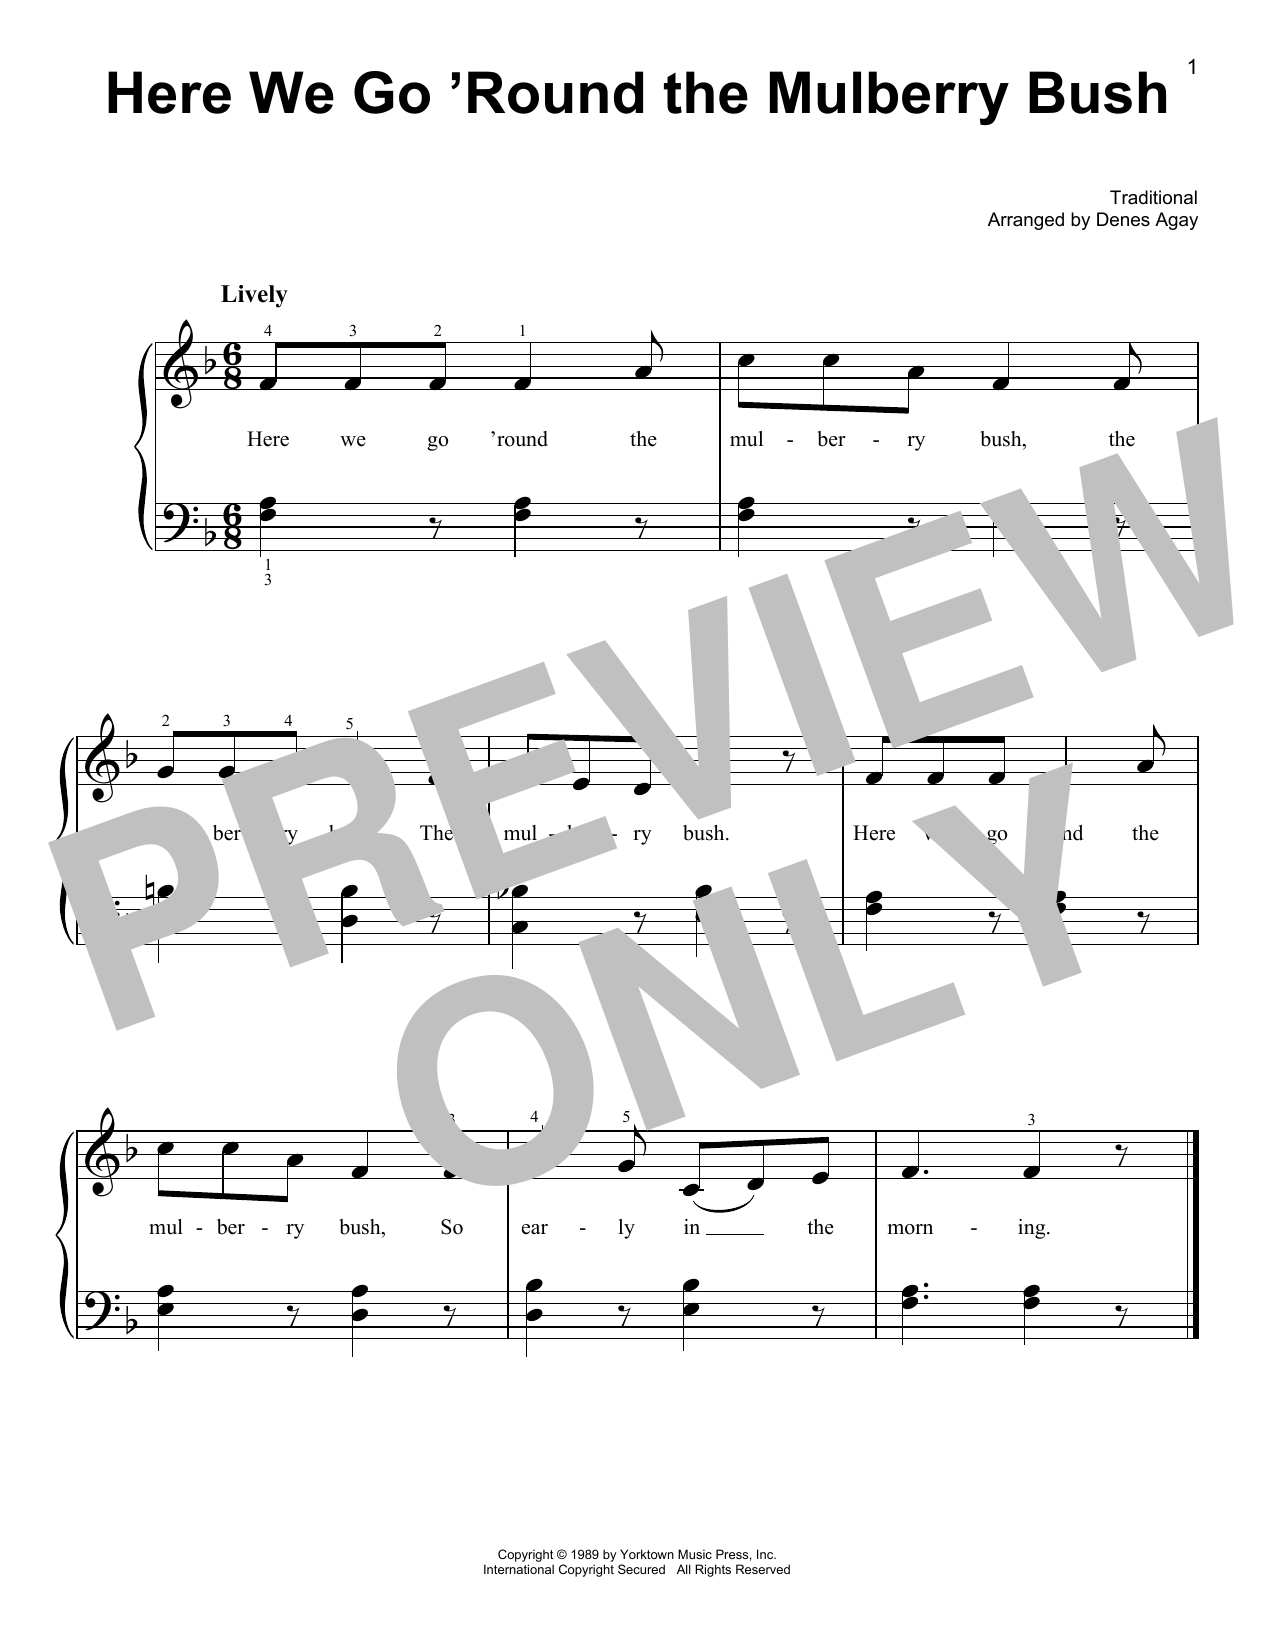 Here We Go 'Round The Mulberry Bush (arr. Denes Agay) (Easy Piano)